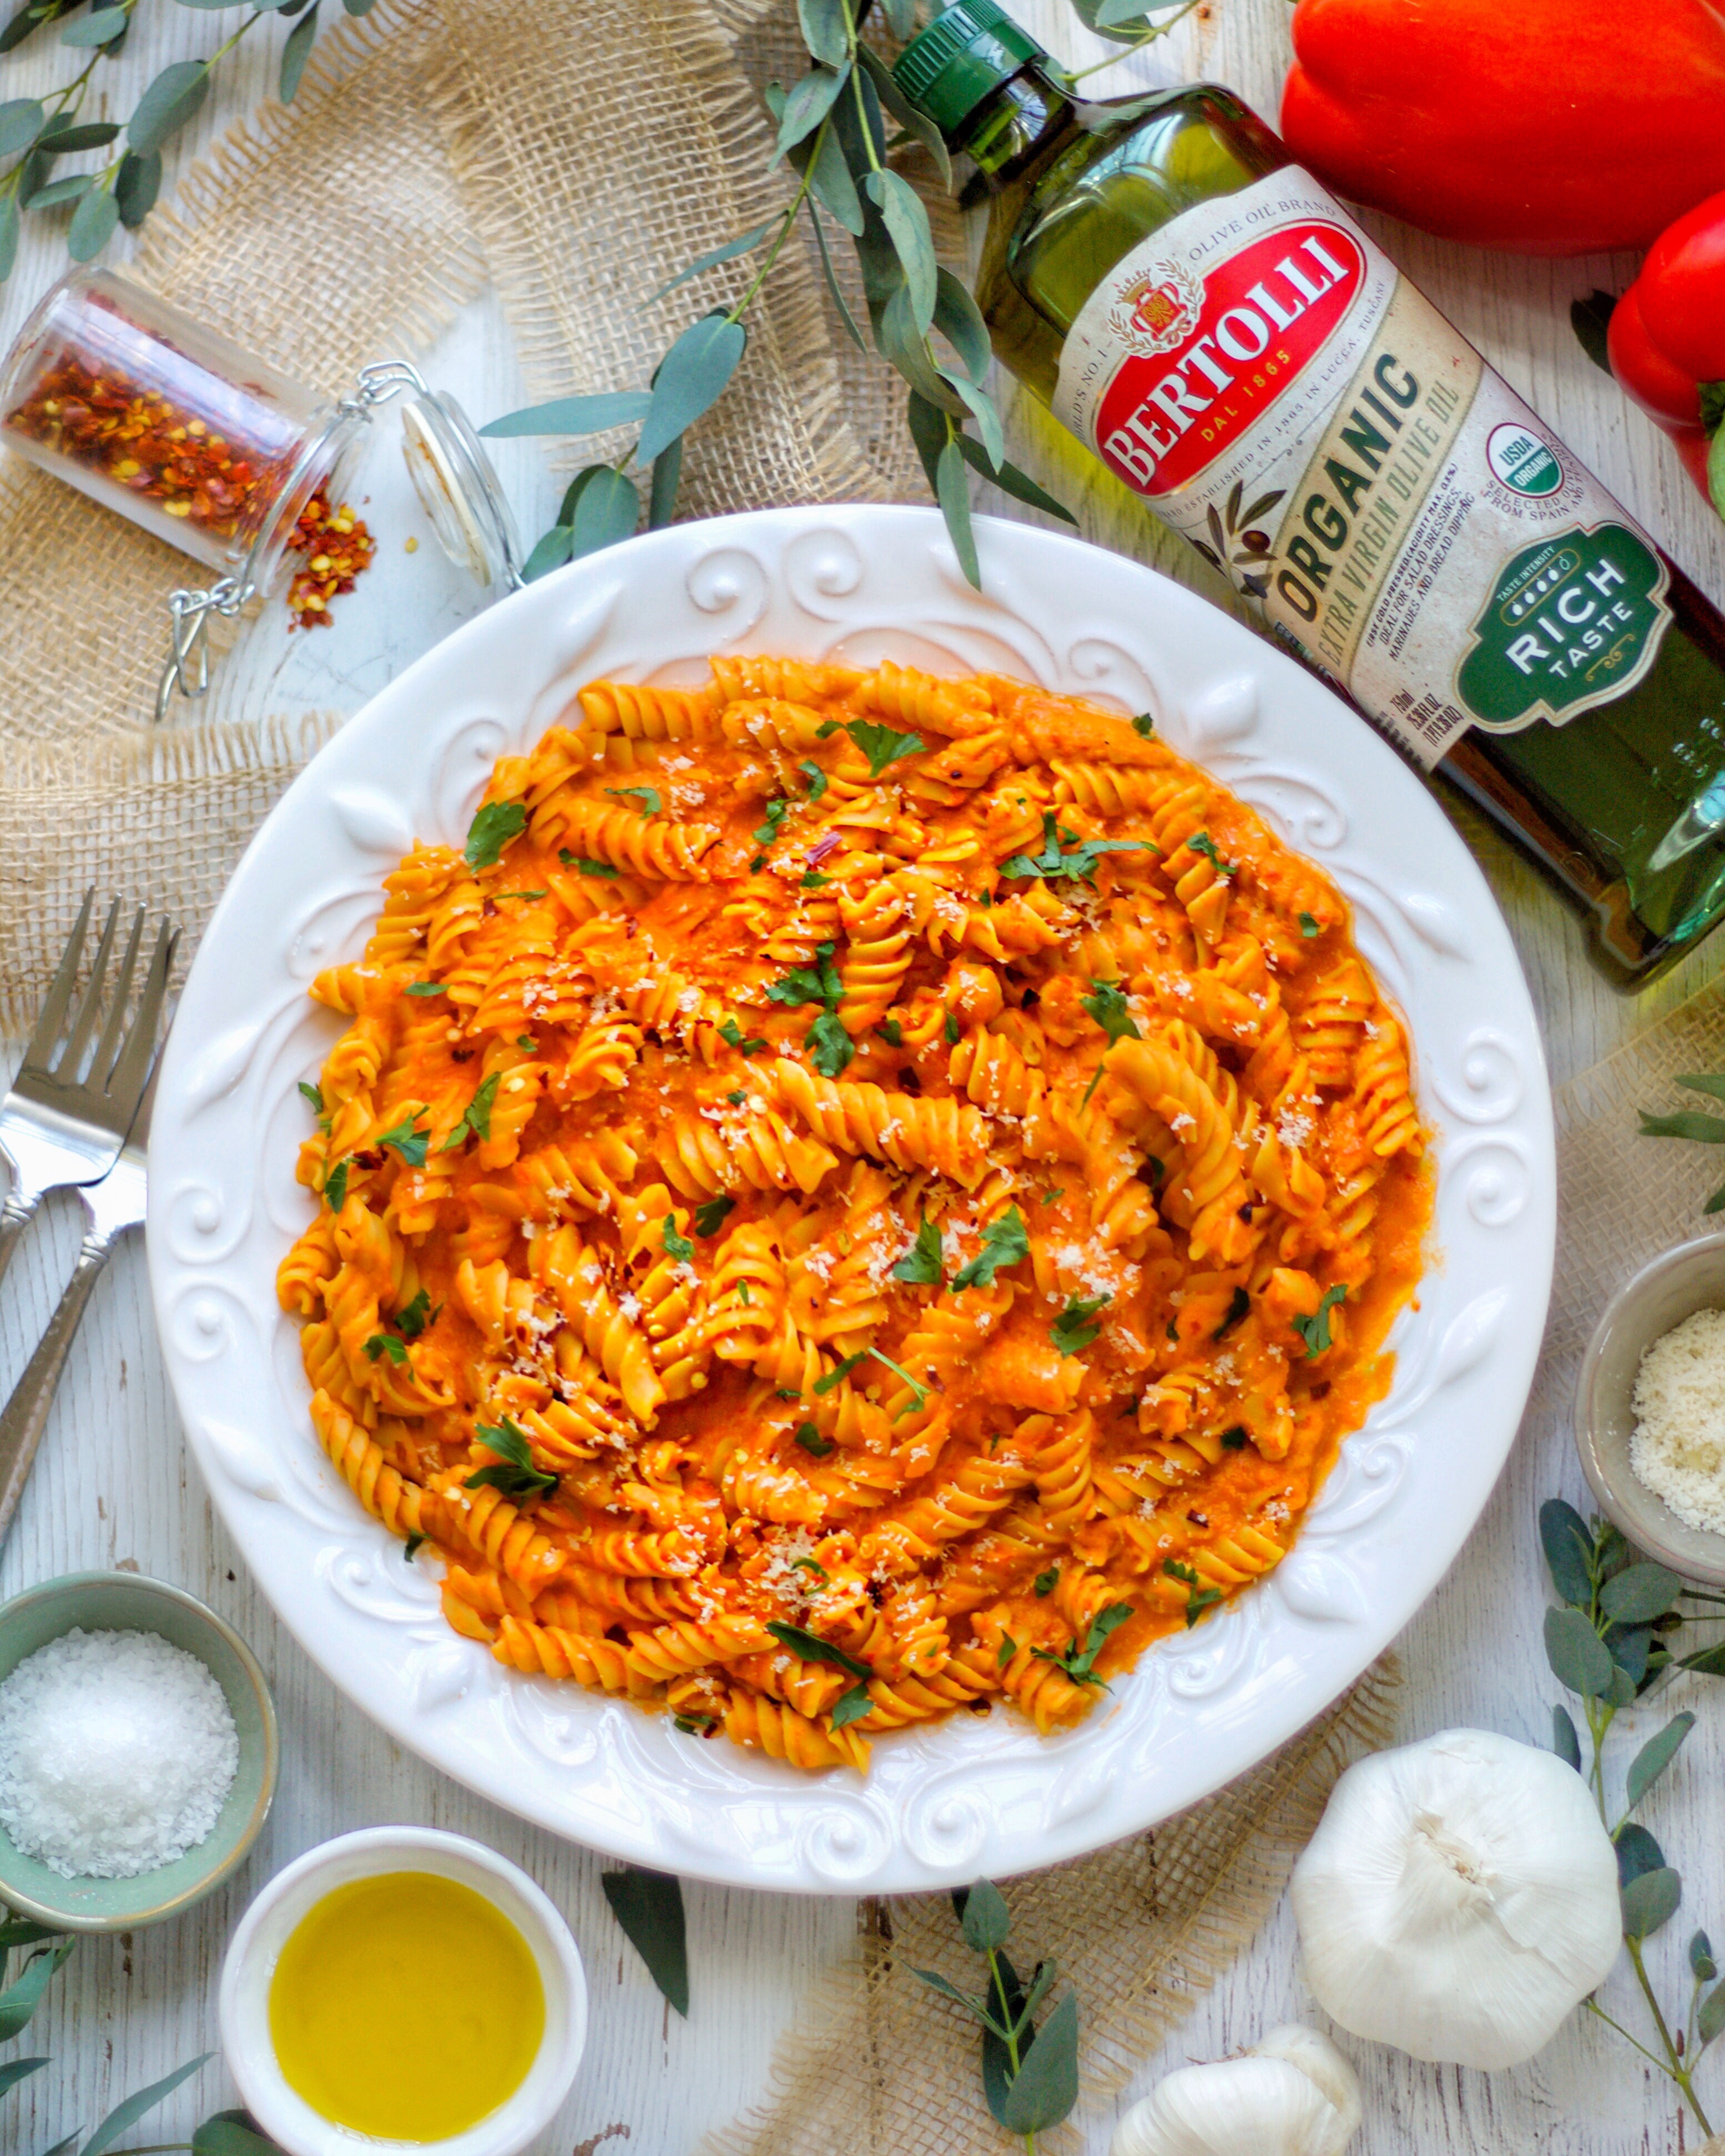 Roasted red pepper sauce and Pasta